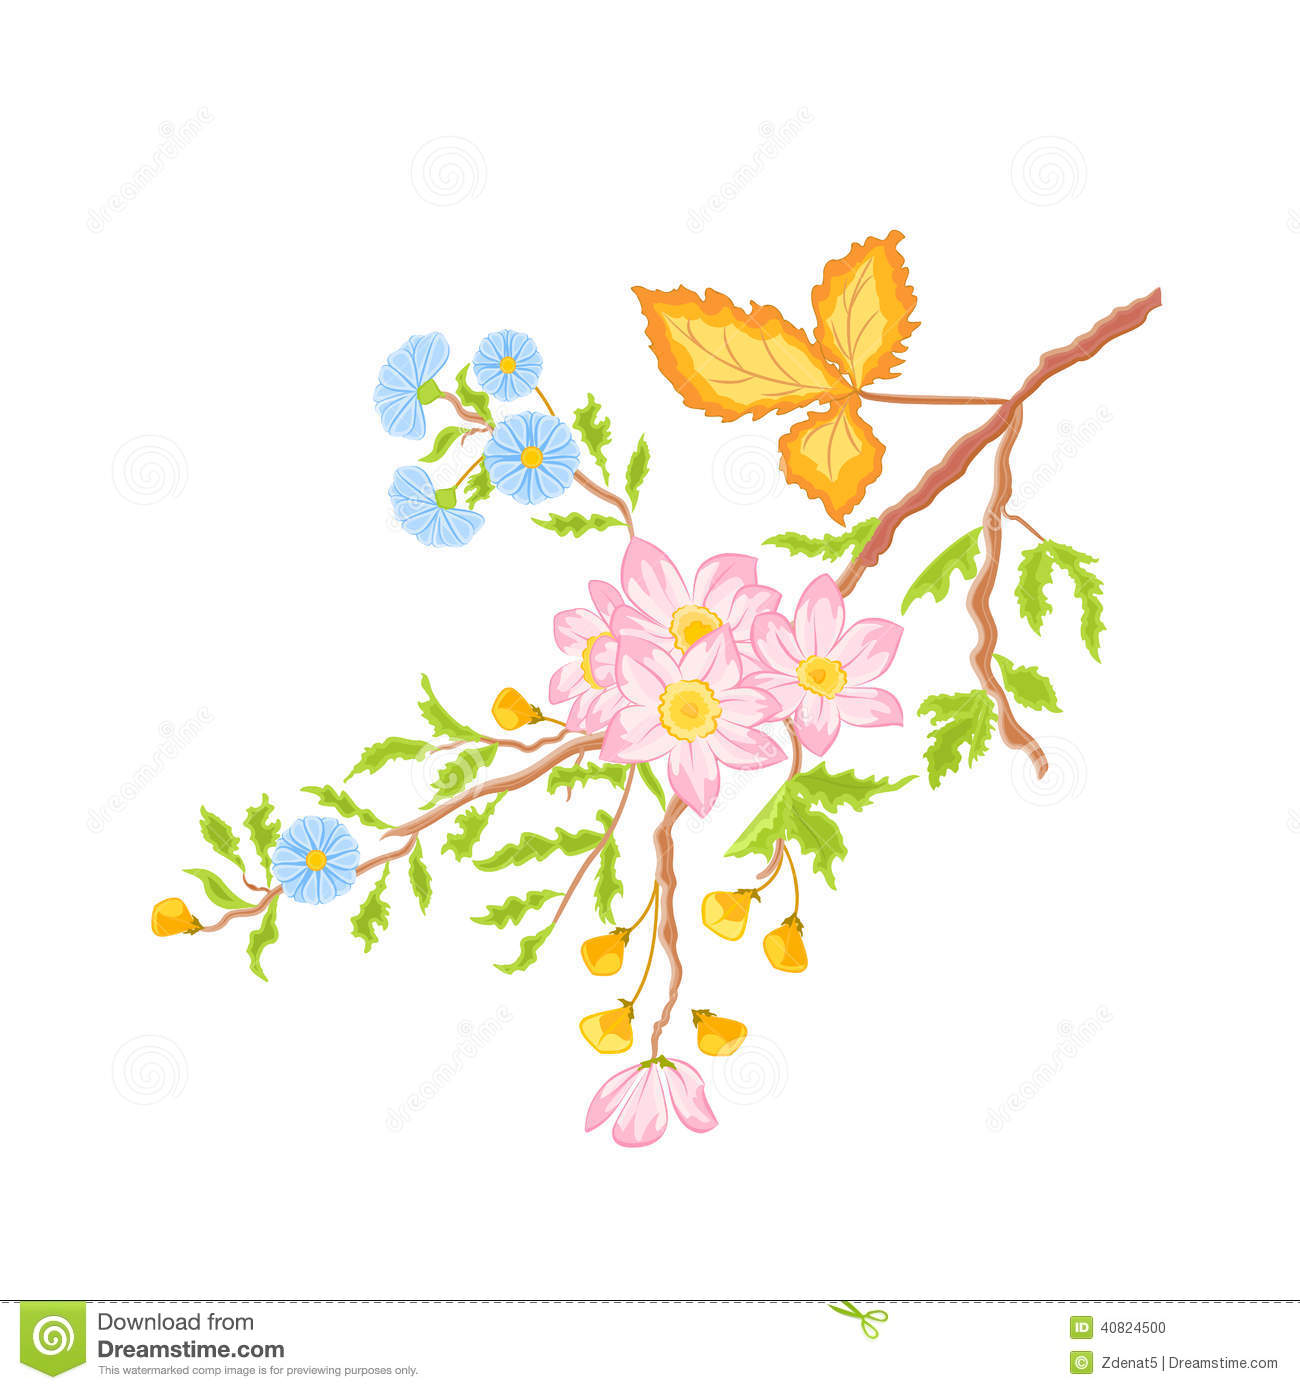 Twig Shrub Whit Spring Flowers Vector Without Gradients Stock.